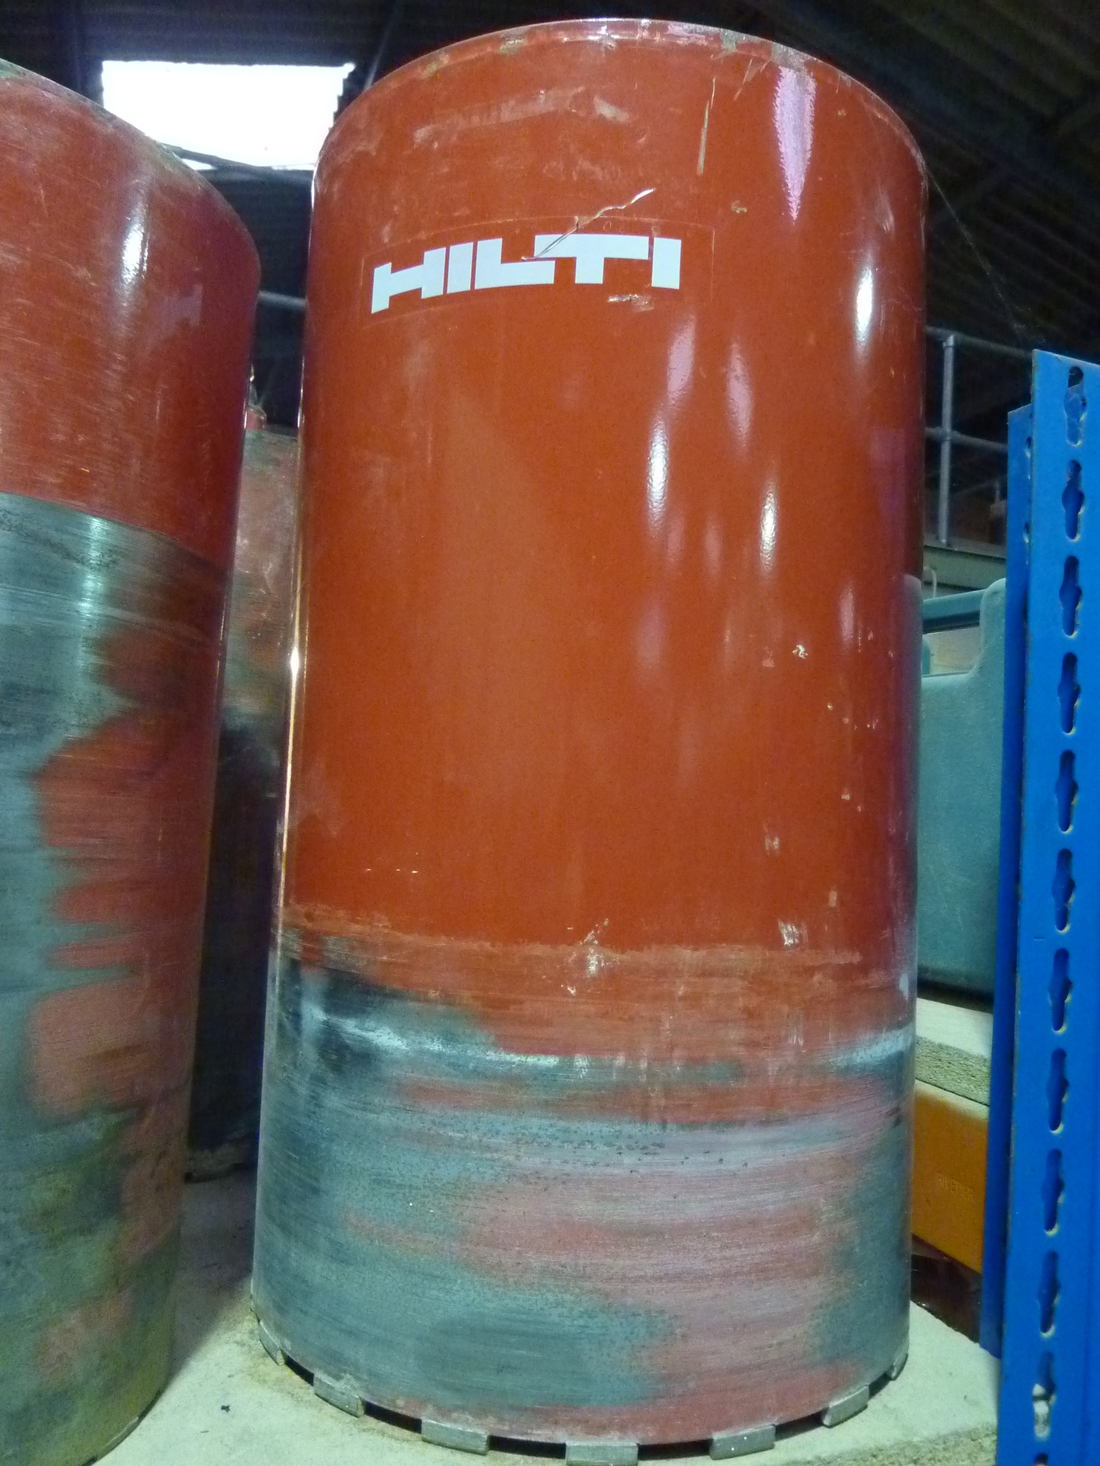 Hilti DD200 Wet Diamond Core 300mm